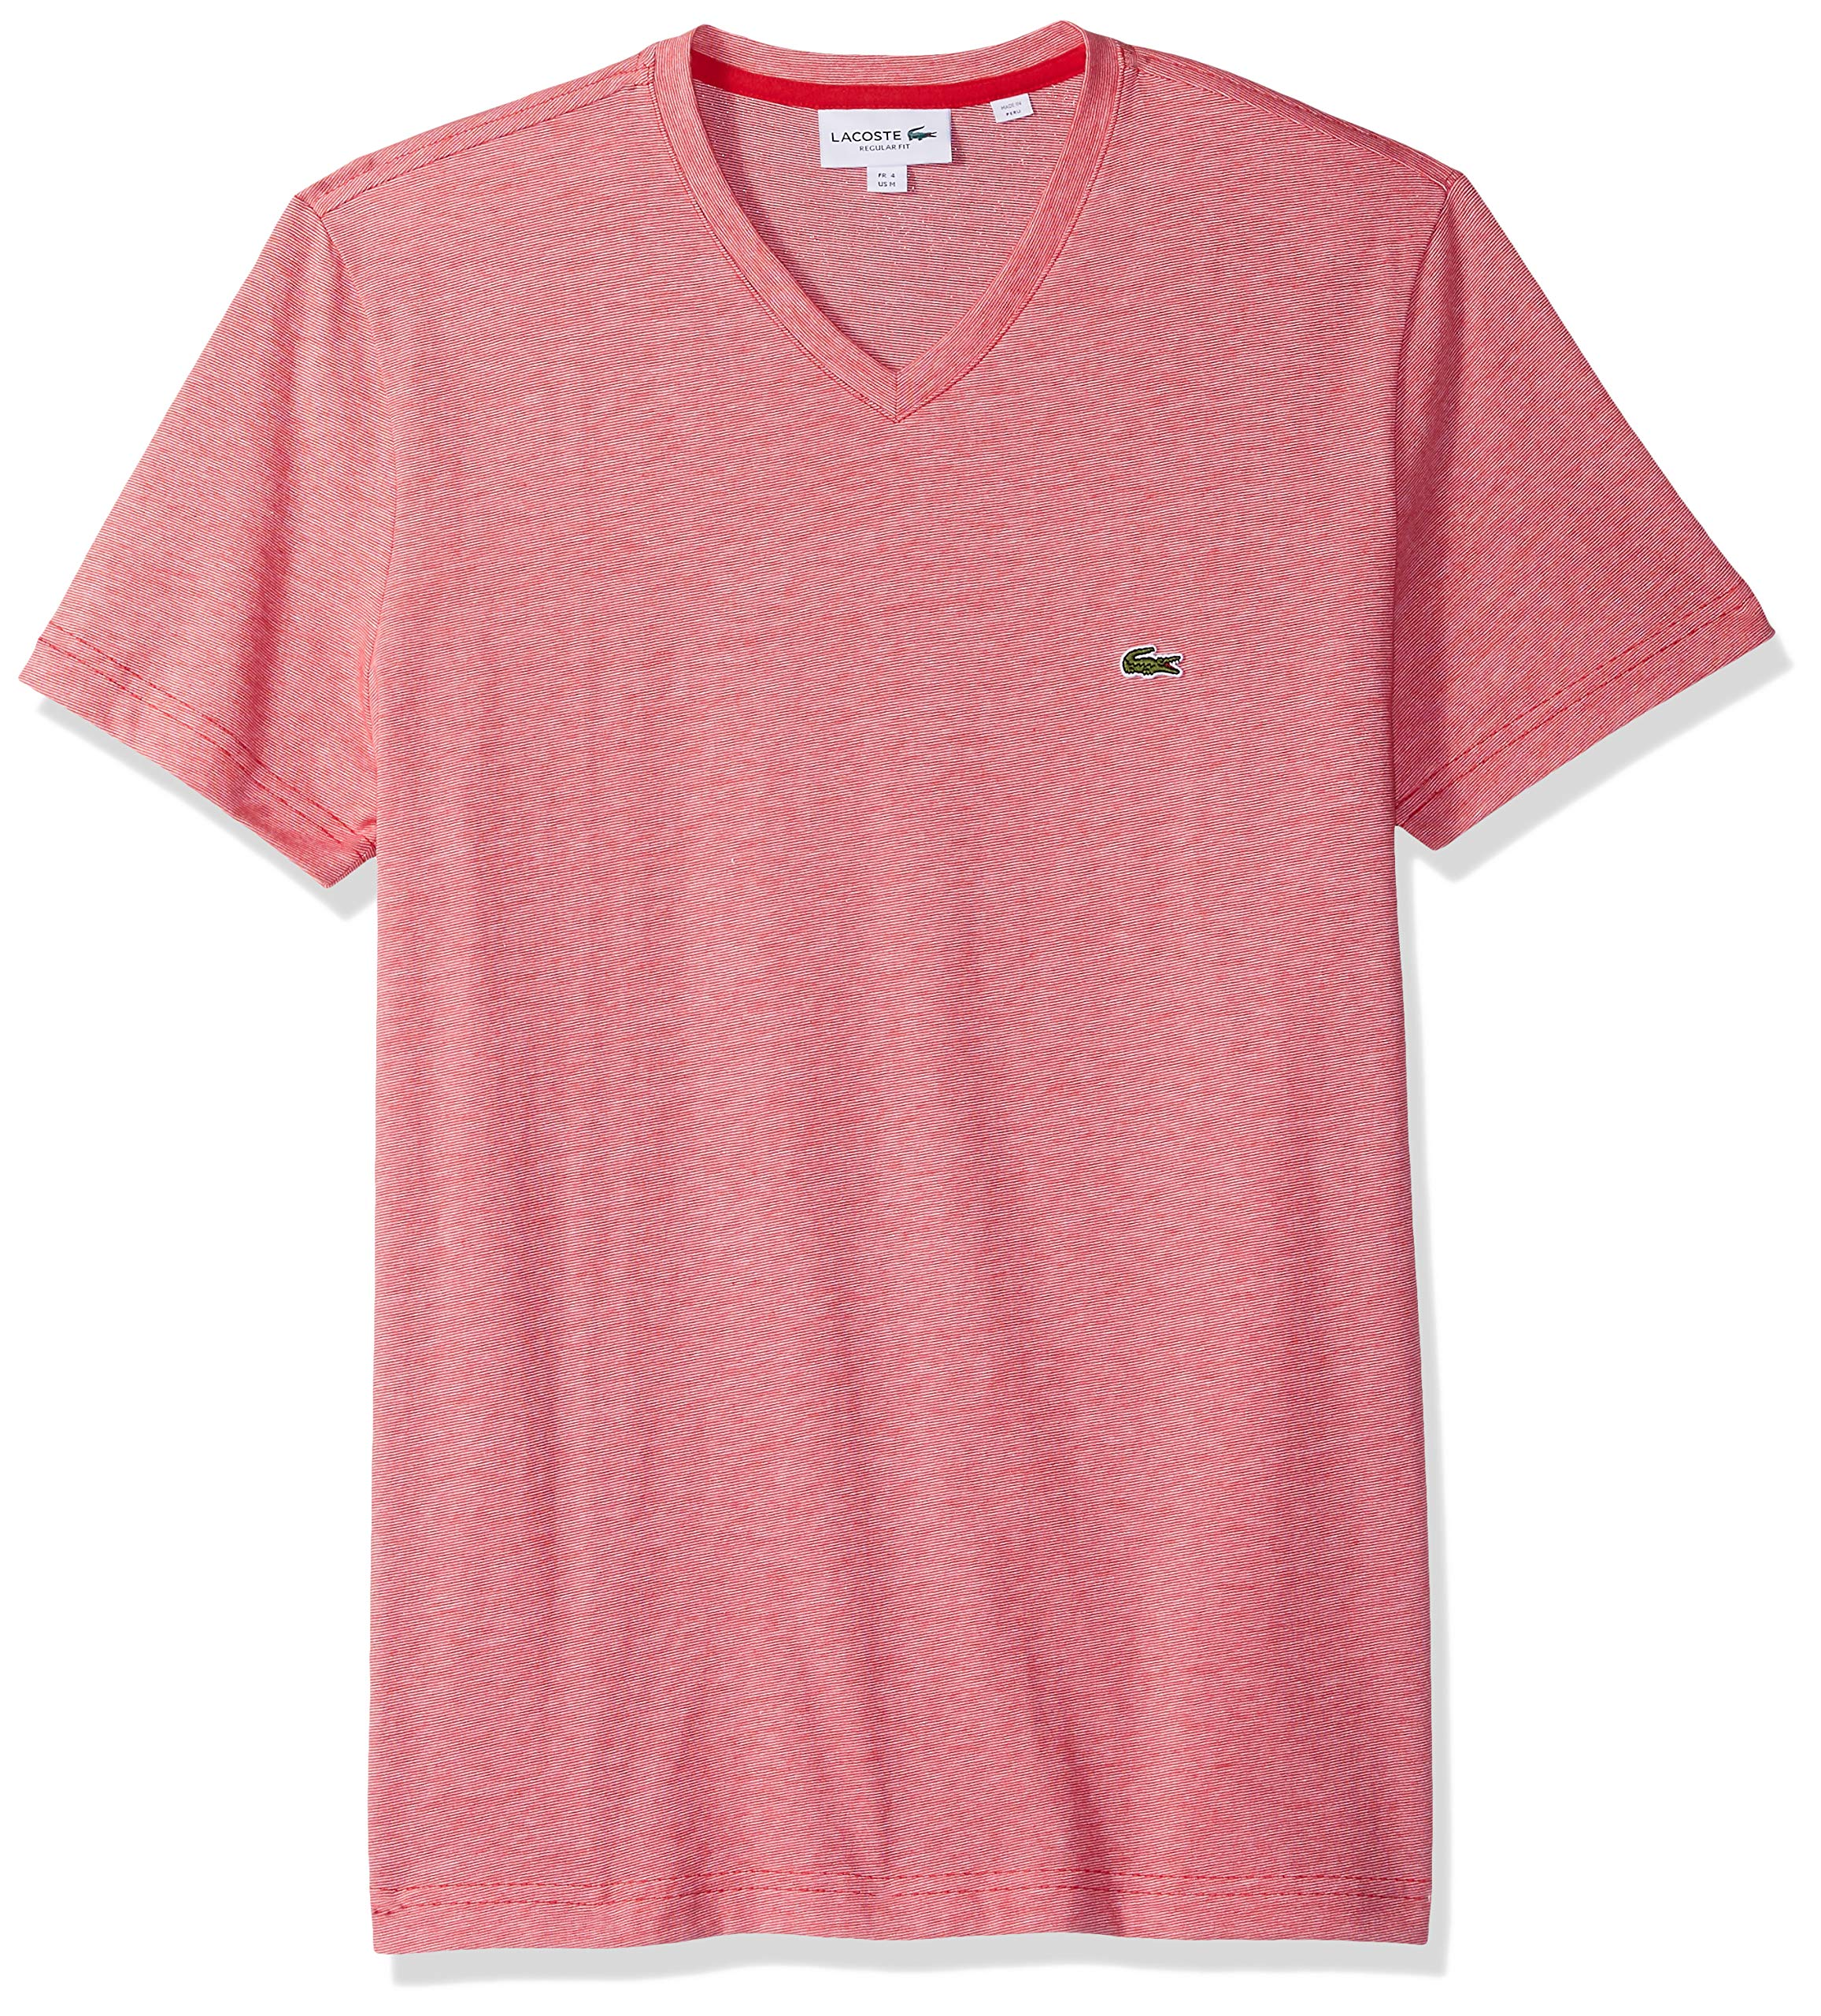 Lacoste Men's Fine Stripe Short Sleeve T-Shirt, TH6810, Imperial Red/White, Small